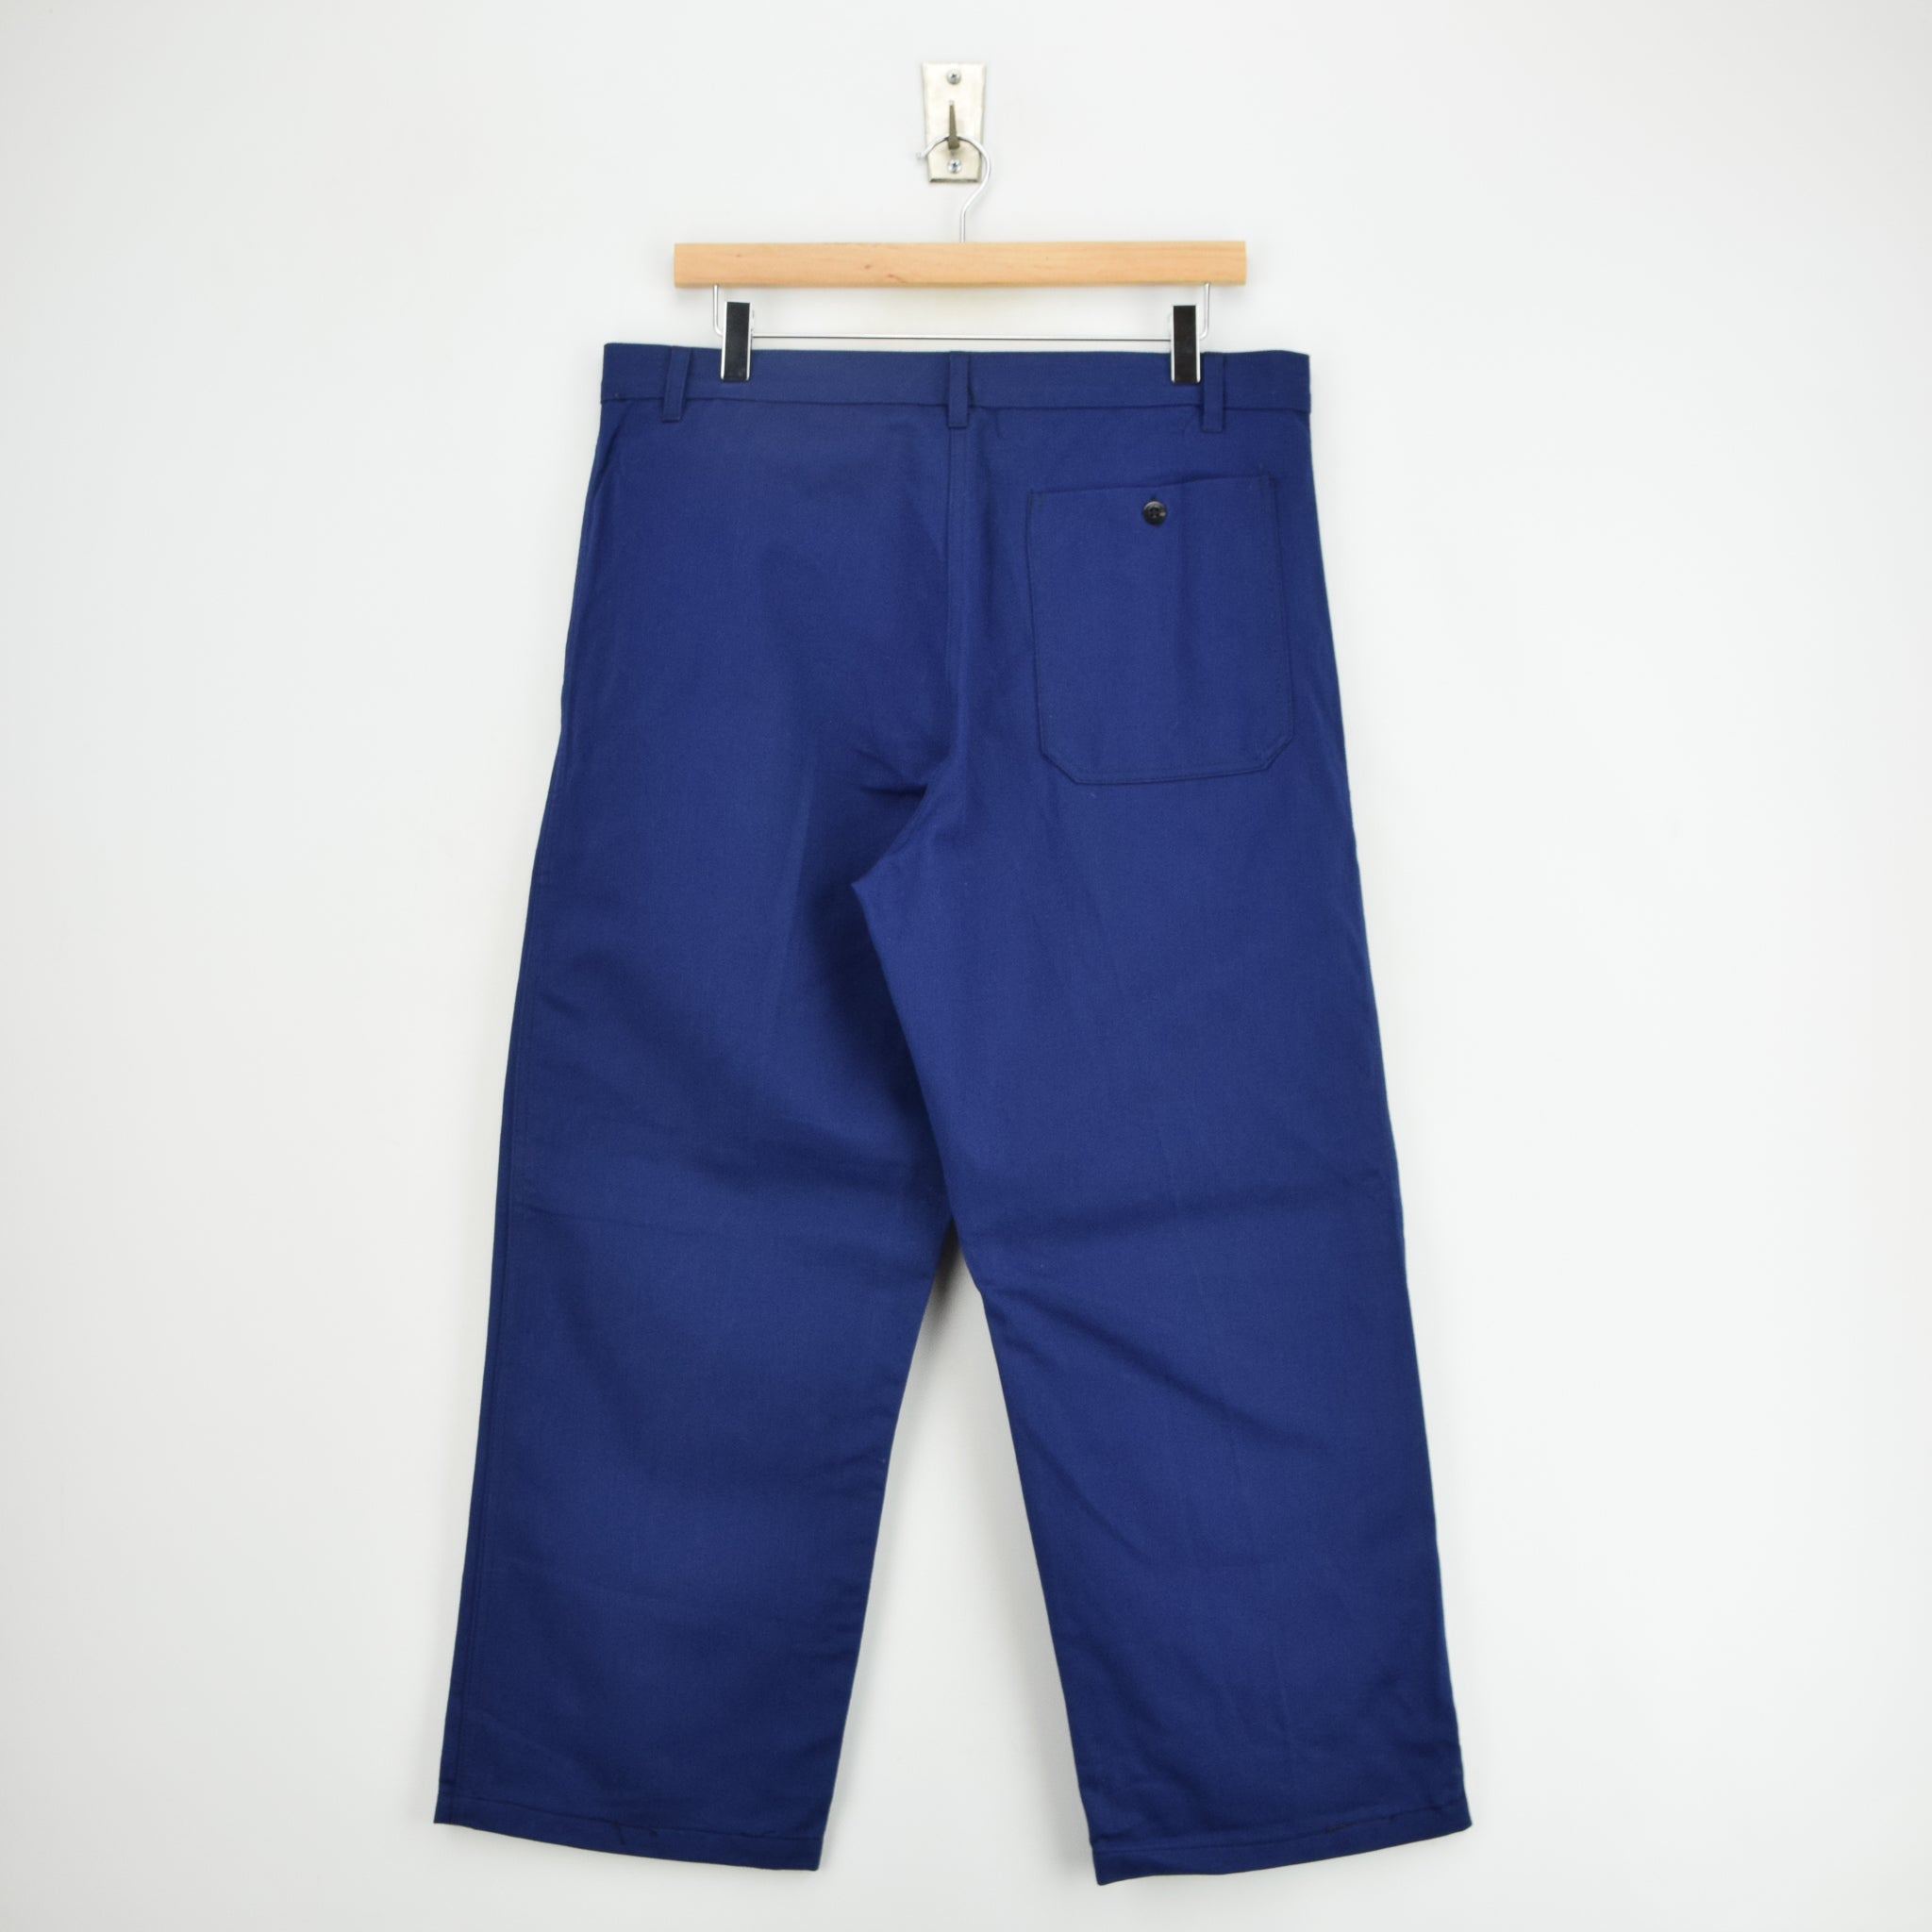 Vintage Workwear Blue French Style Work Utility Trousers Italy Made 32 W 25 L back